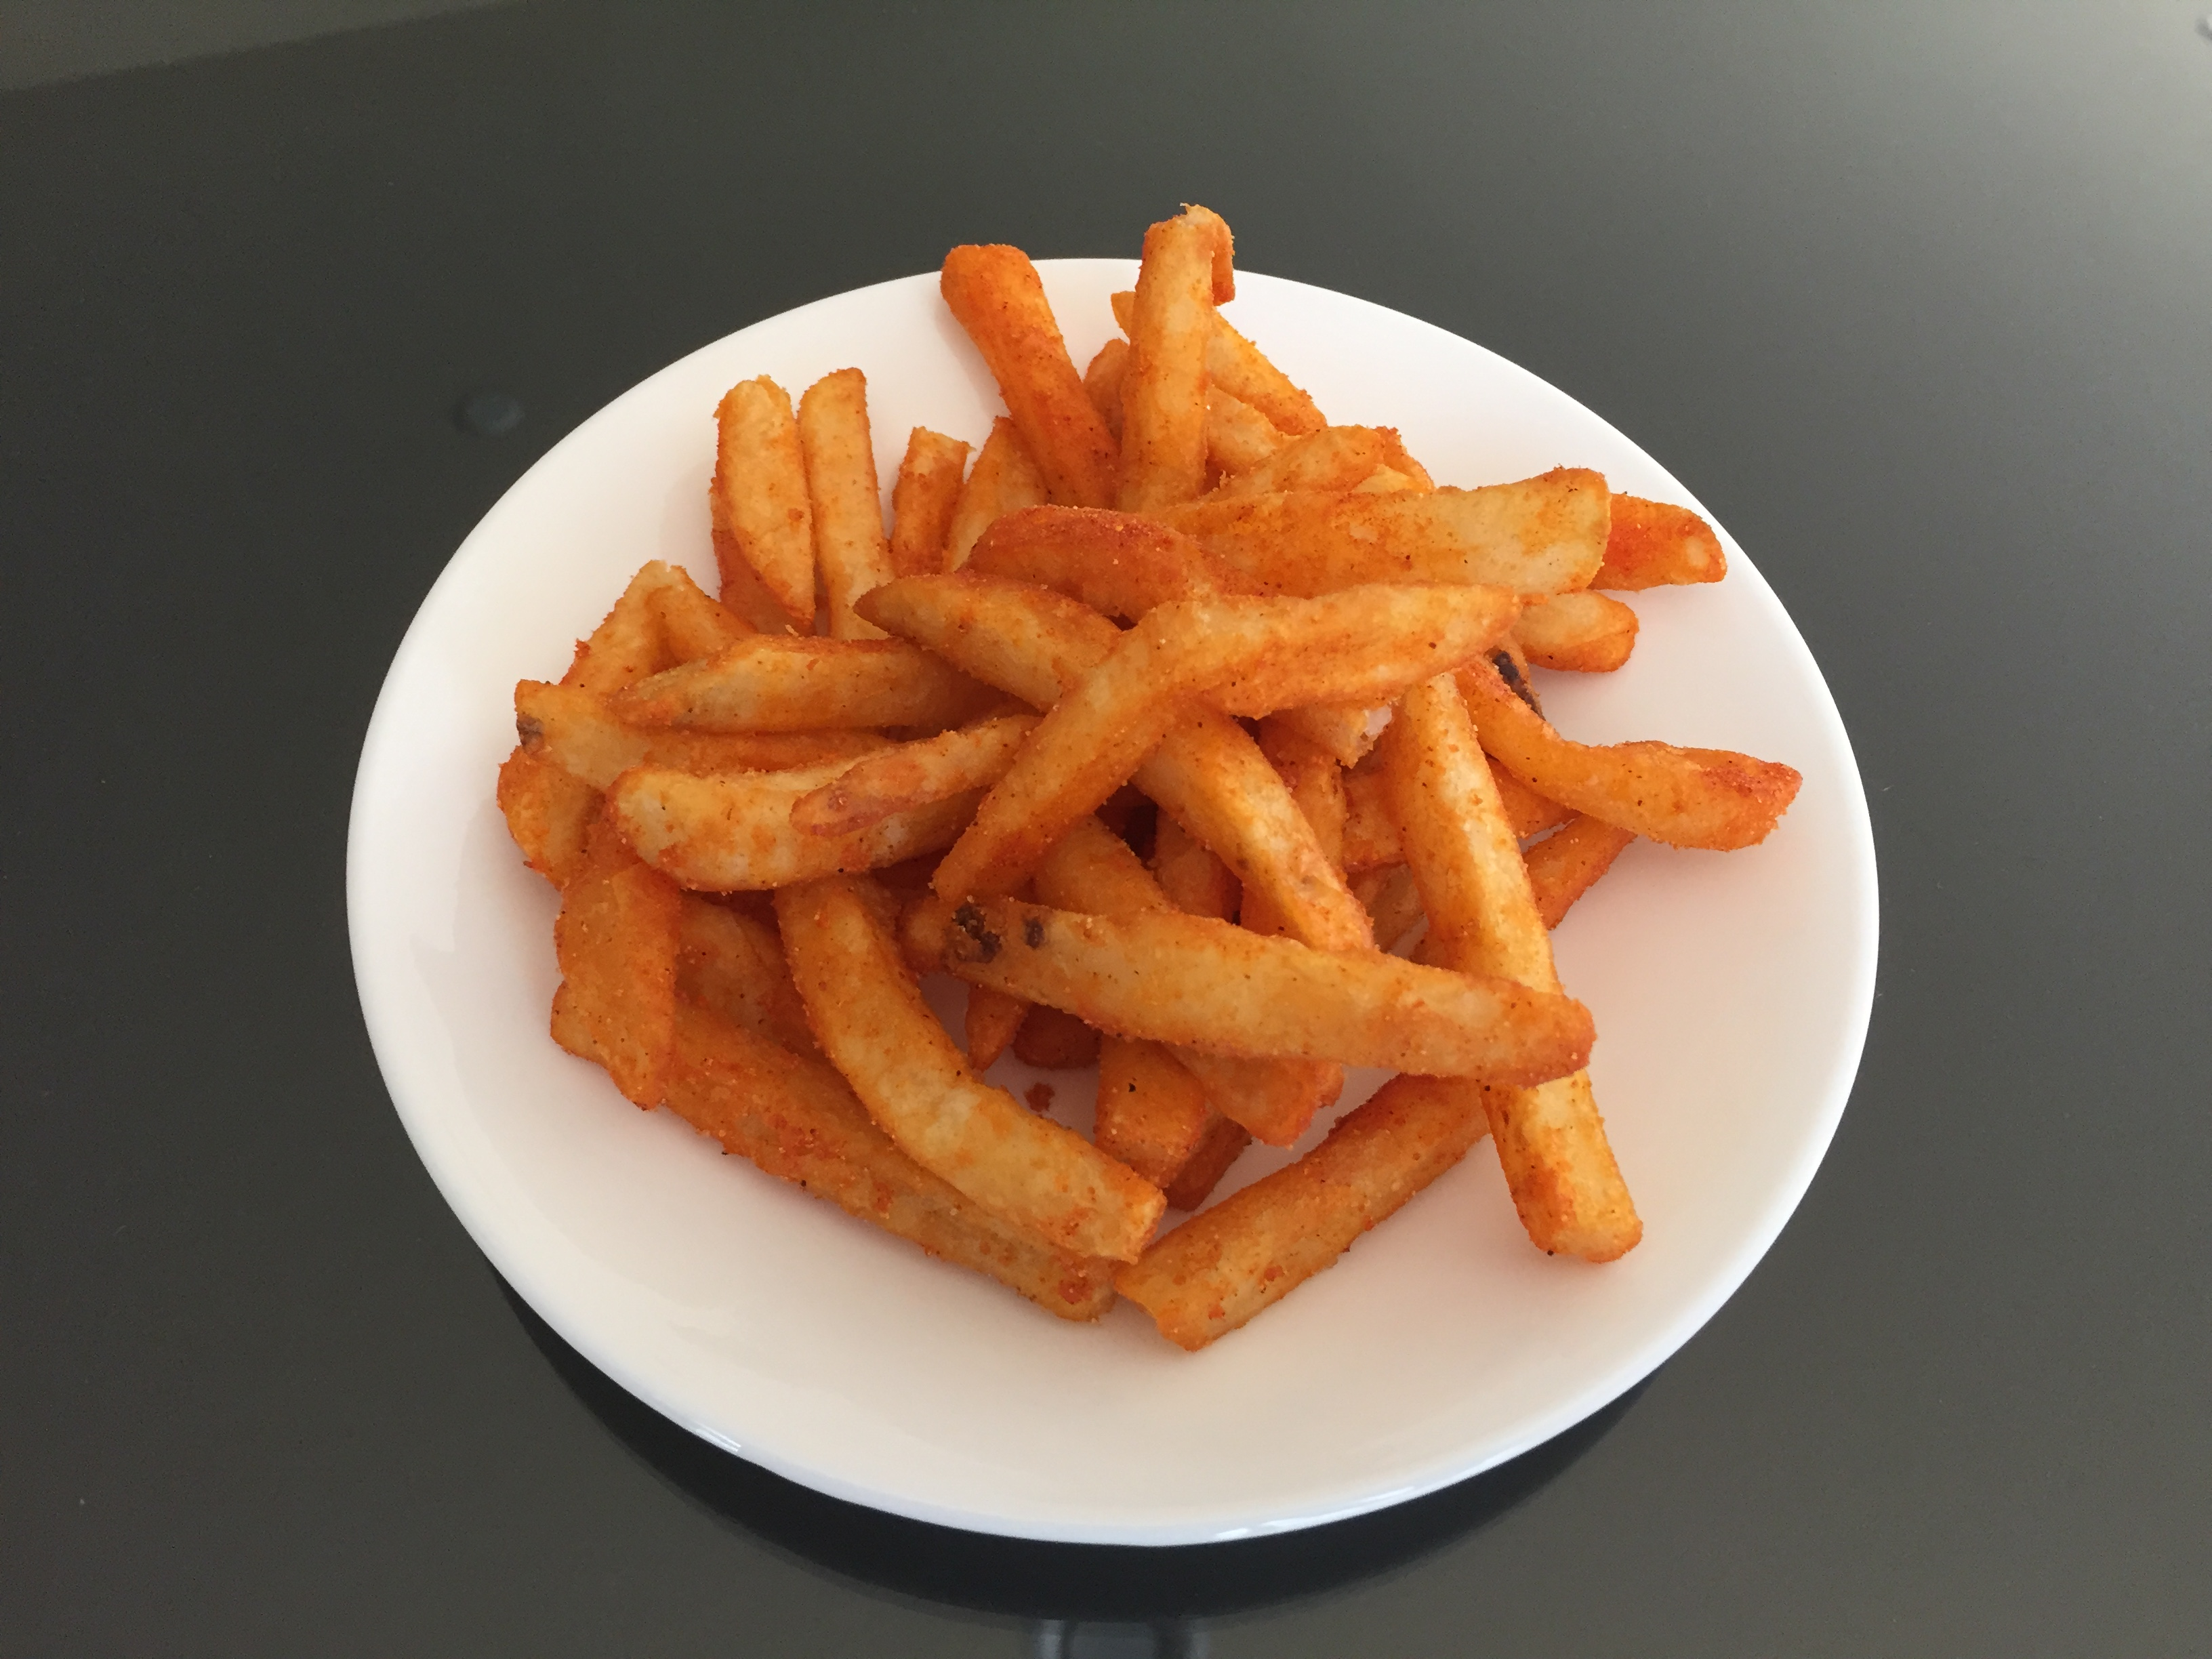 Flavored French Fries